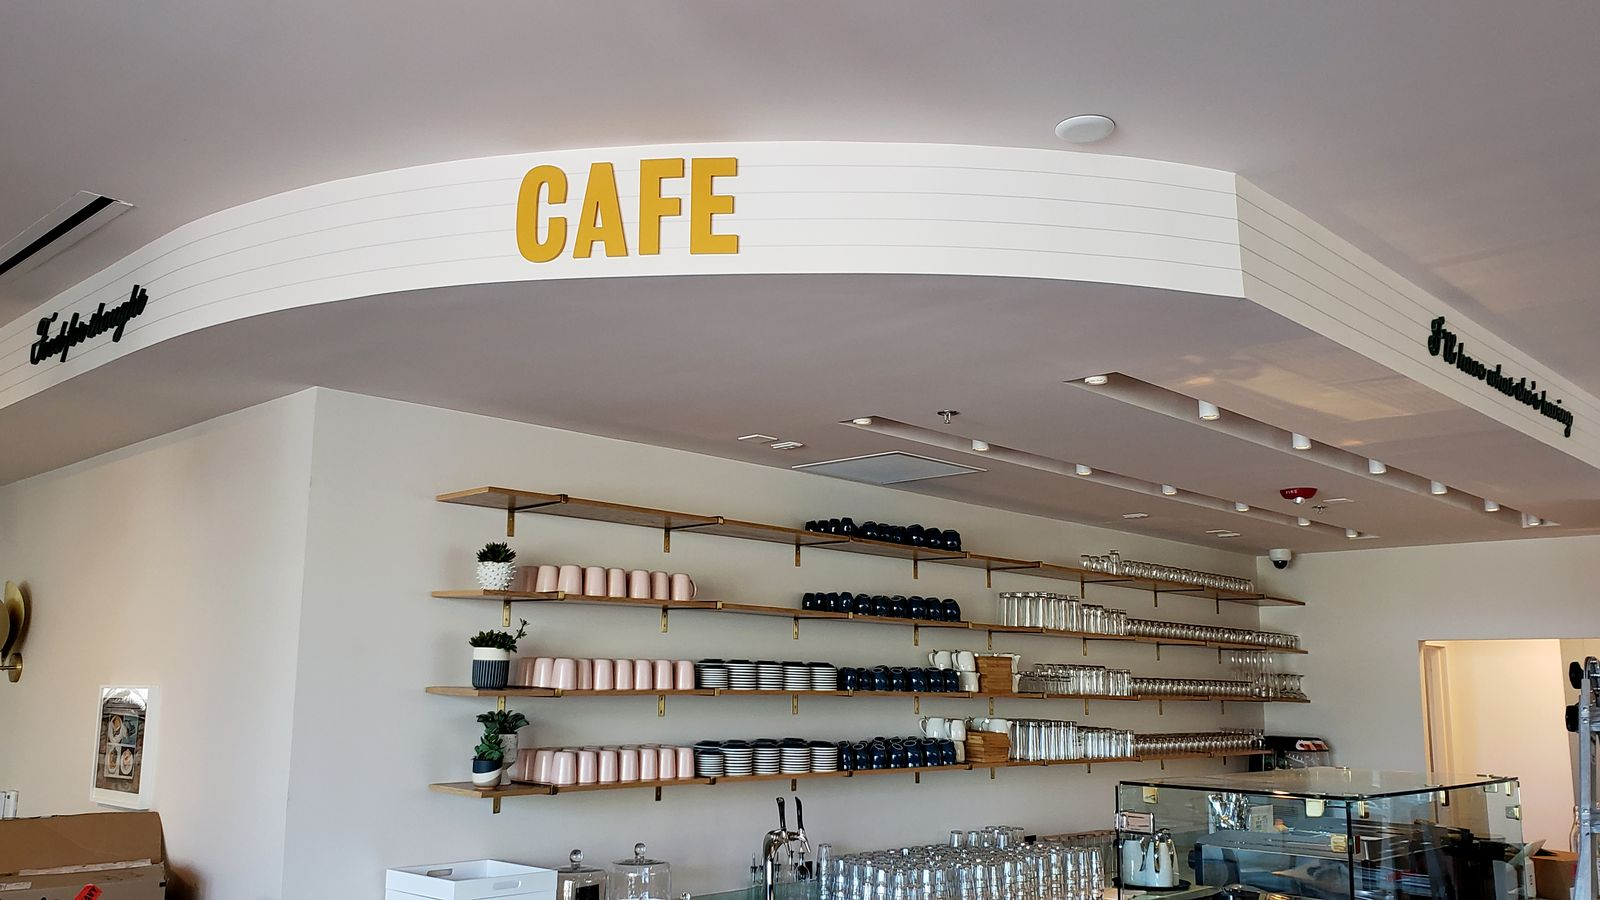 painted 3d acrylic letters in yellow color with the word Cafe fixed to the wall for restaurant interior branding